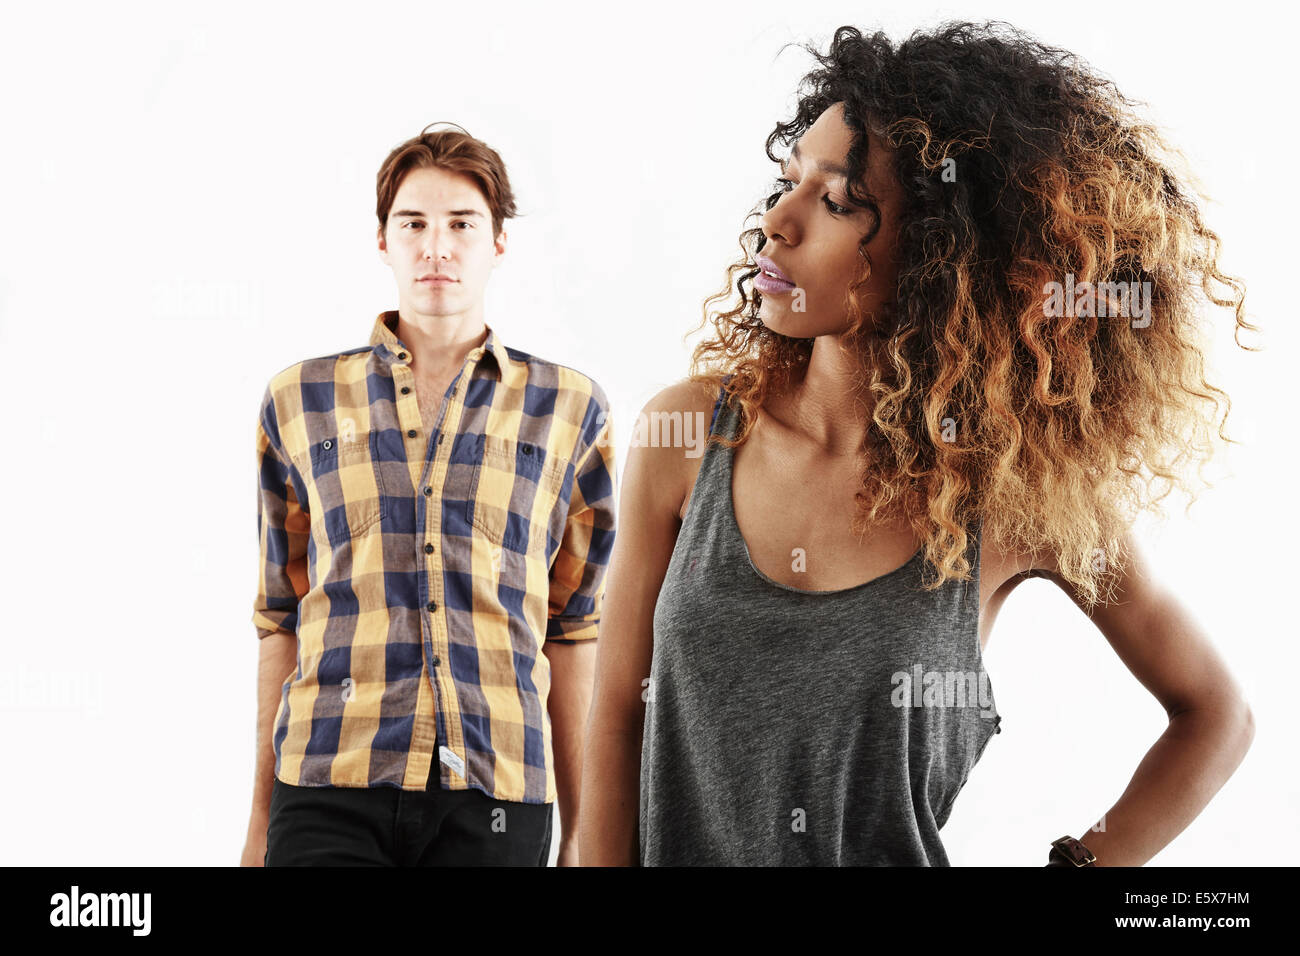 Studio portrait of confident young woman in front of young man - Stock Image